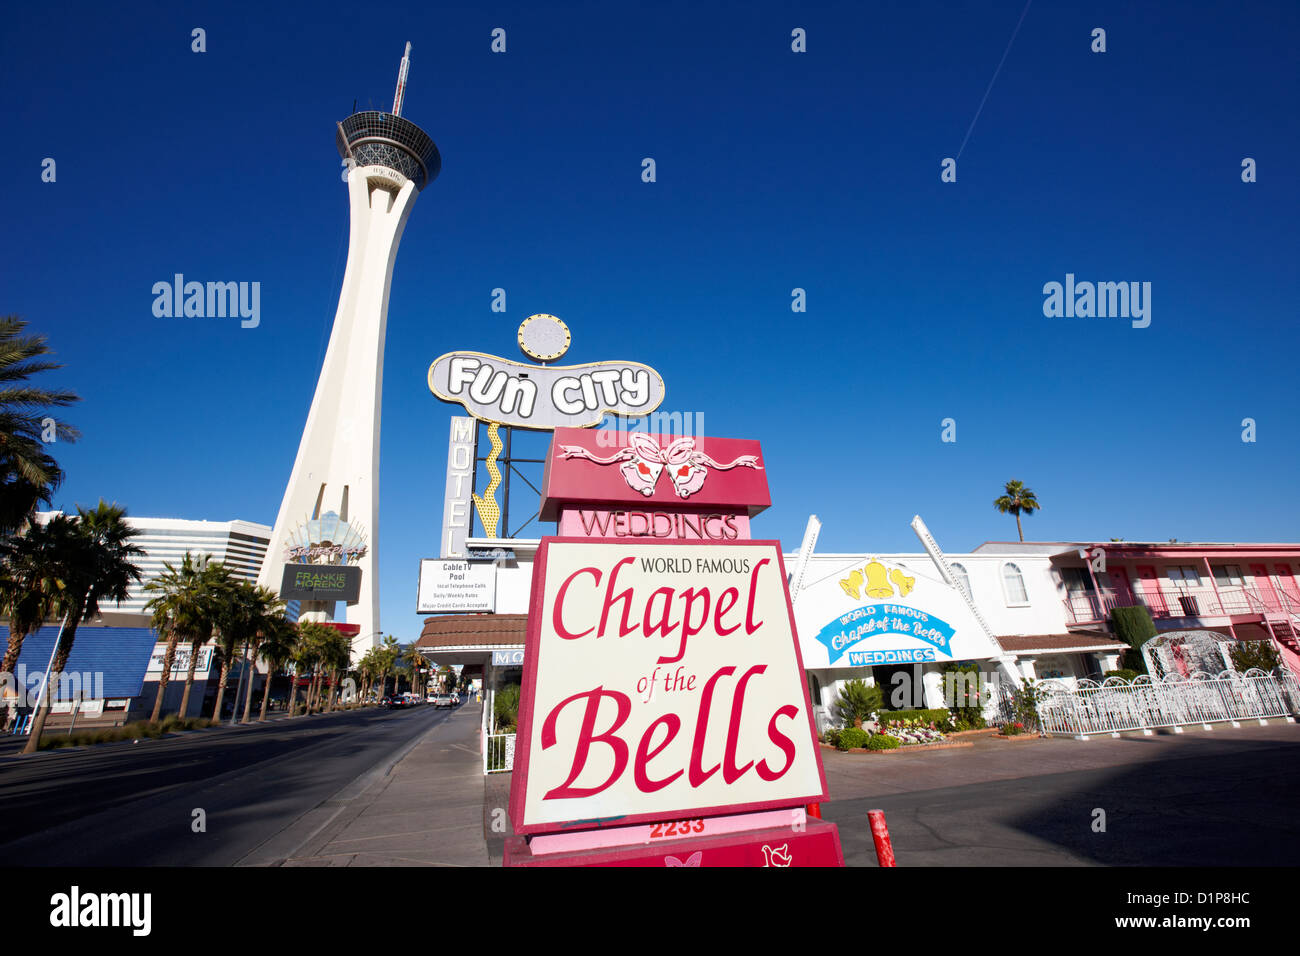 fun city motel and chapel of the bells wedding chapel on the strip Las Vegas Nevada USA - Stock Image